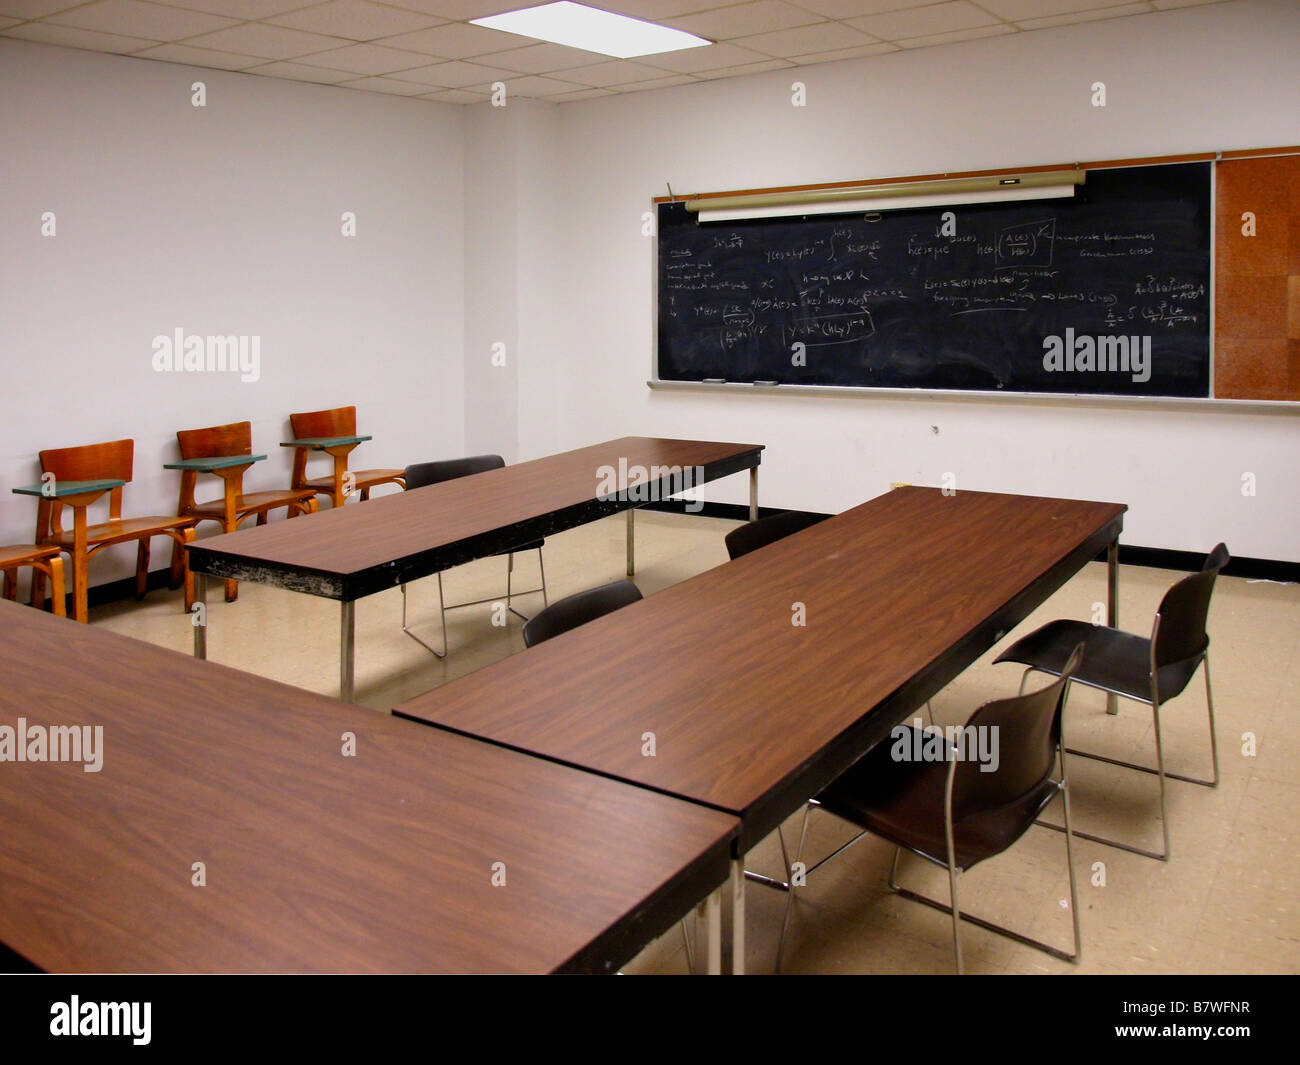 Picture of: Tables Chairs And Desk Chairs In An Empty Classroom With An Old Stock Photo Alamy